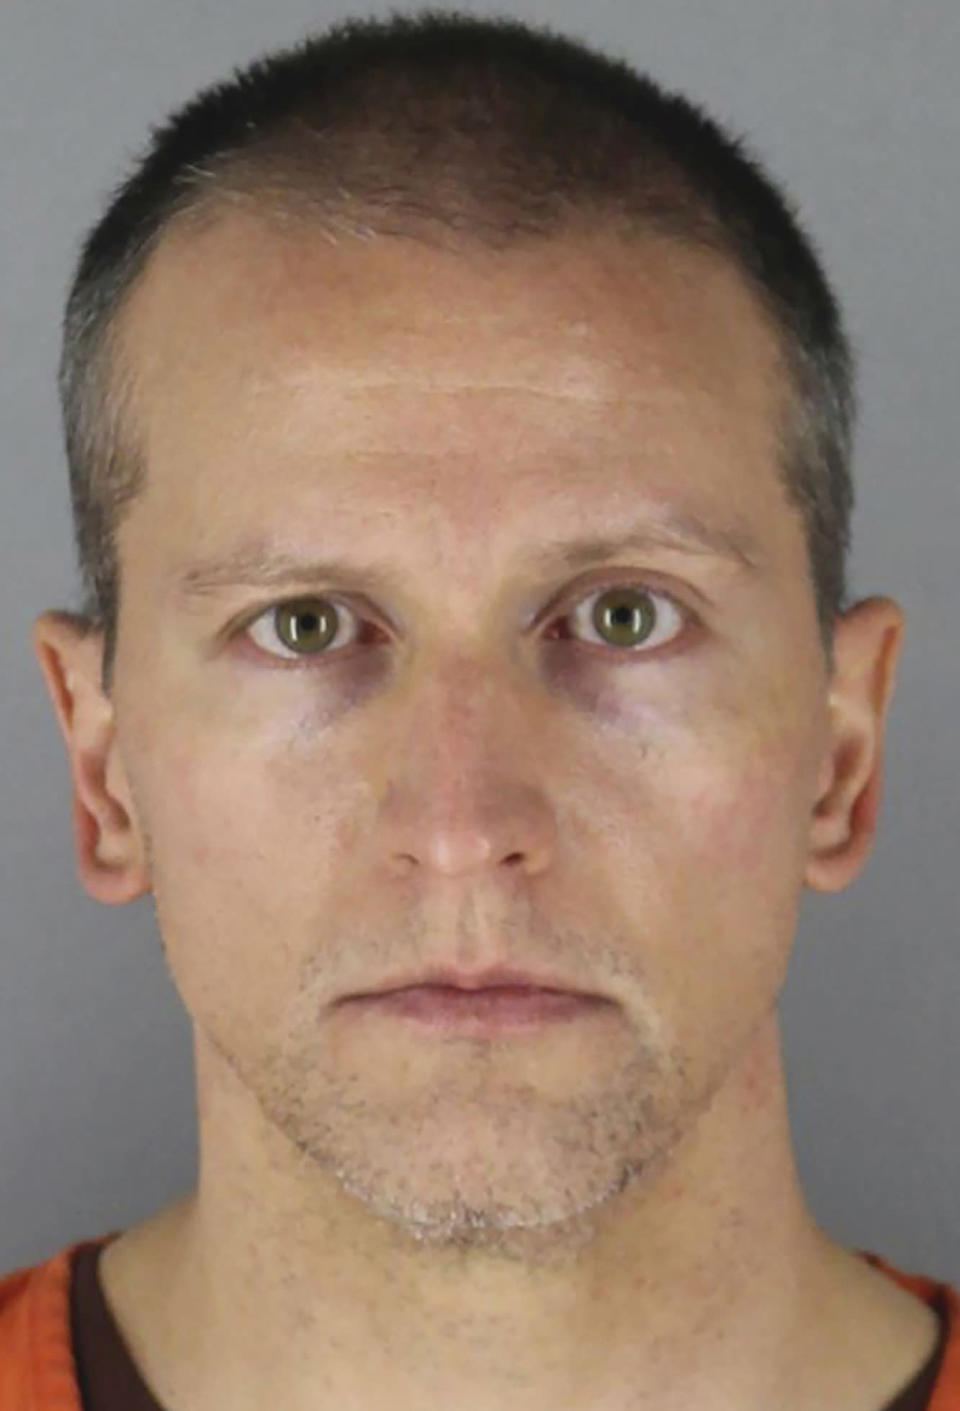 FILE - This undated photo provided by the Hennepin County Sheriff's Office in Minnesota on Wednesday, June 3, 2020, shows, former Minneapolis police officer Derek Chauvin. Chauvin was prepared to plead guilty to third-degree murder in George Floyd's death before then-Attorney General William Barr personally blocked the plea deal last summer, officials said. (Hennepin County Sheriff's Office via AP, File)